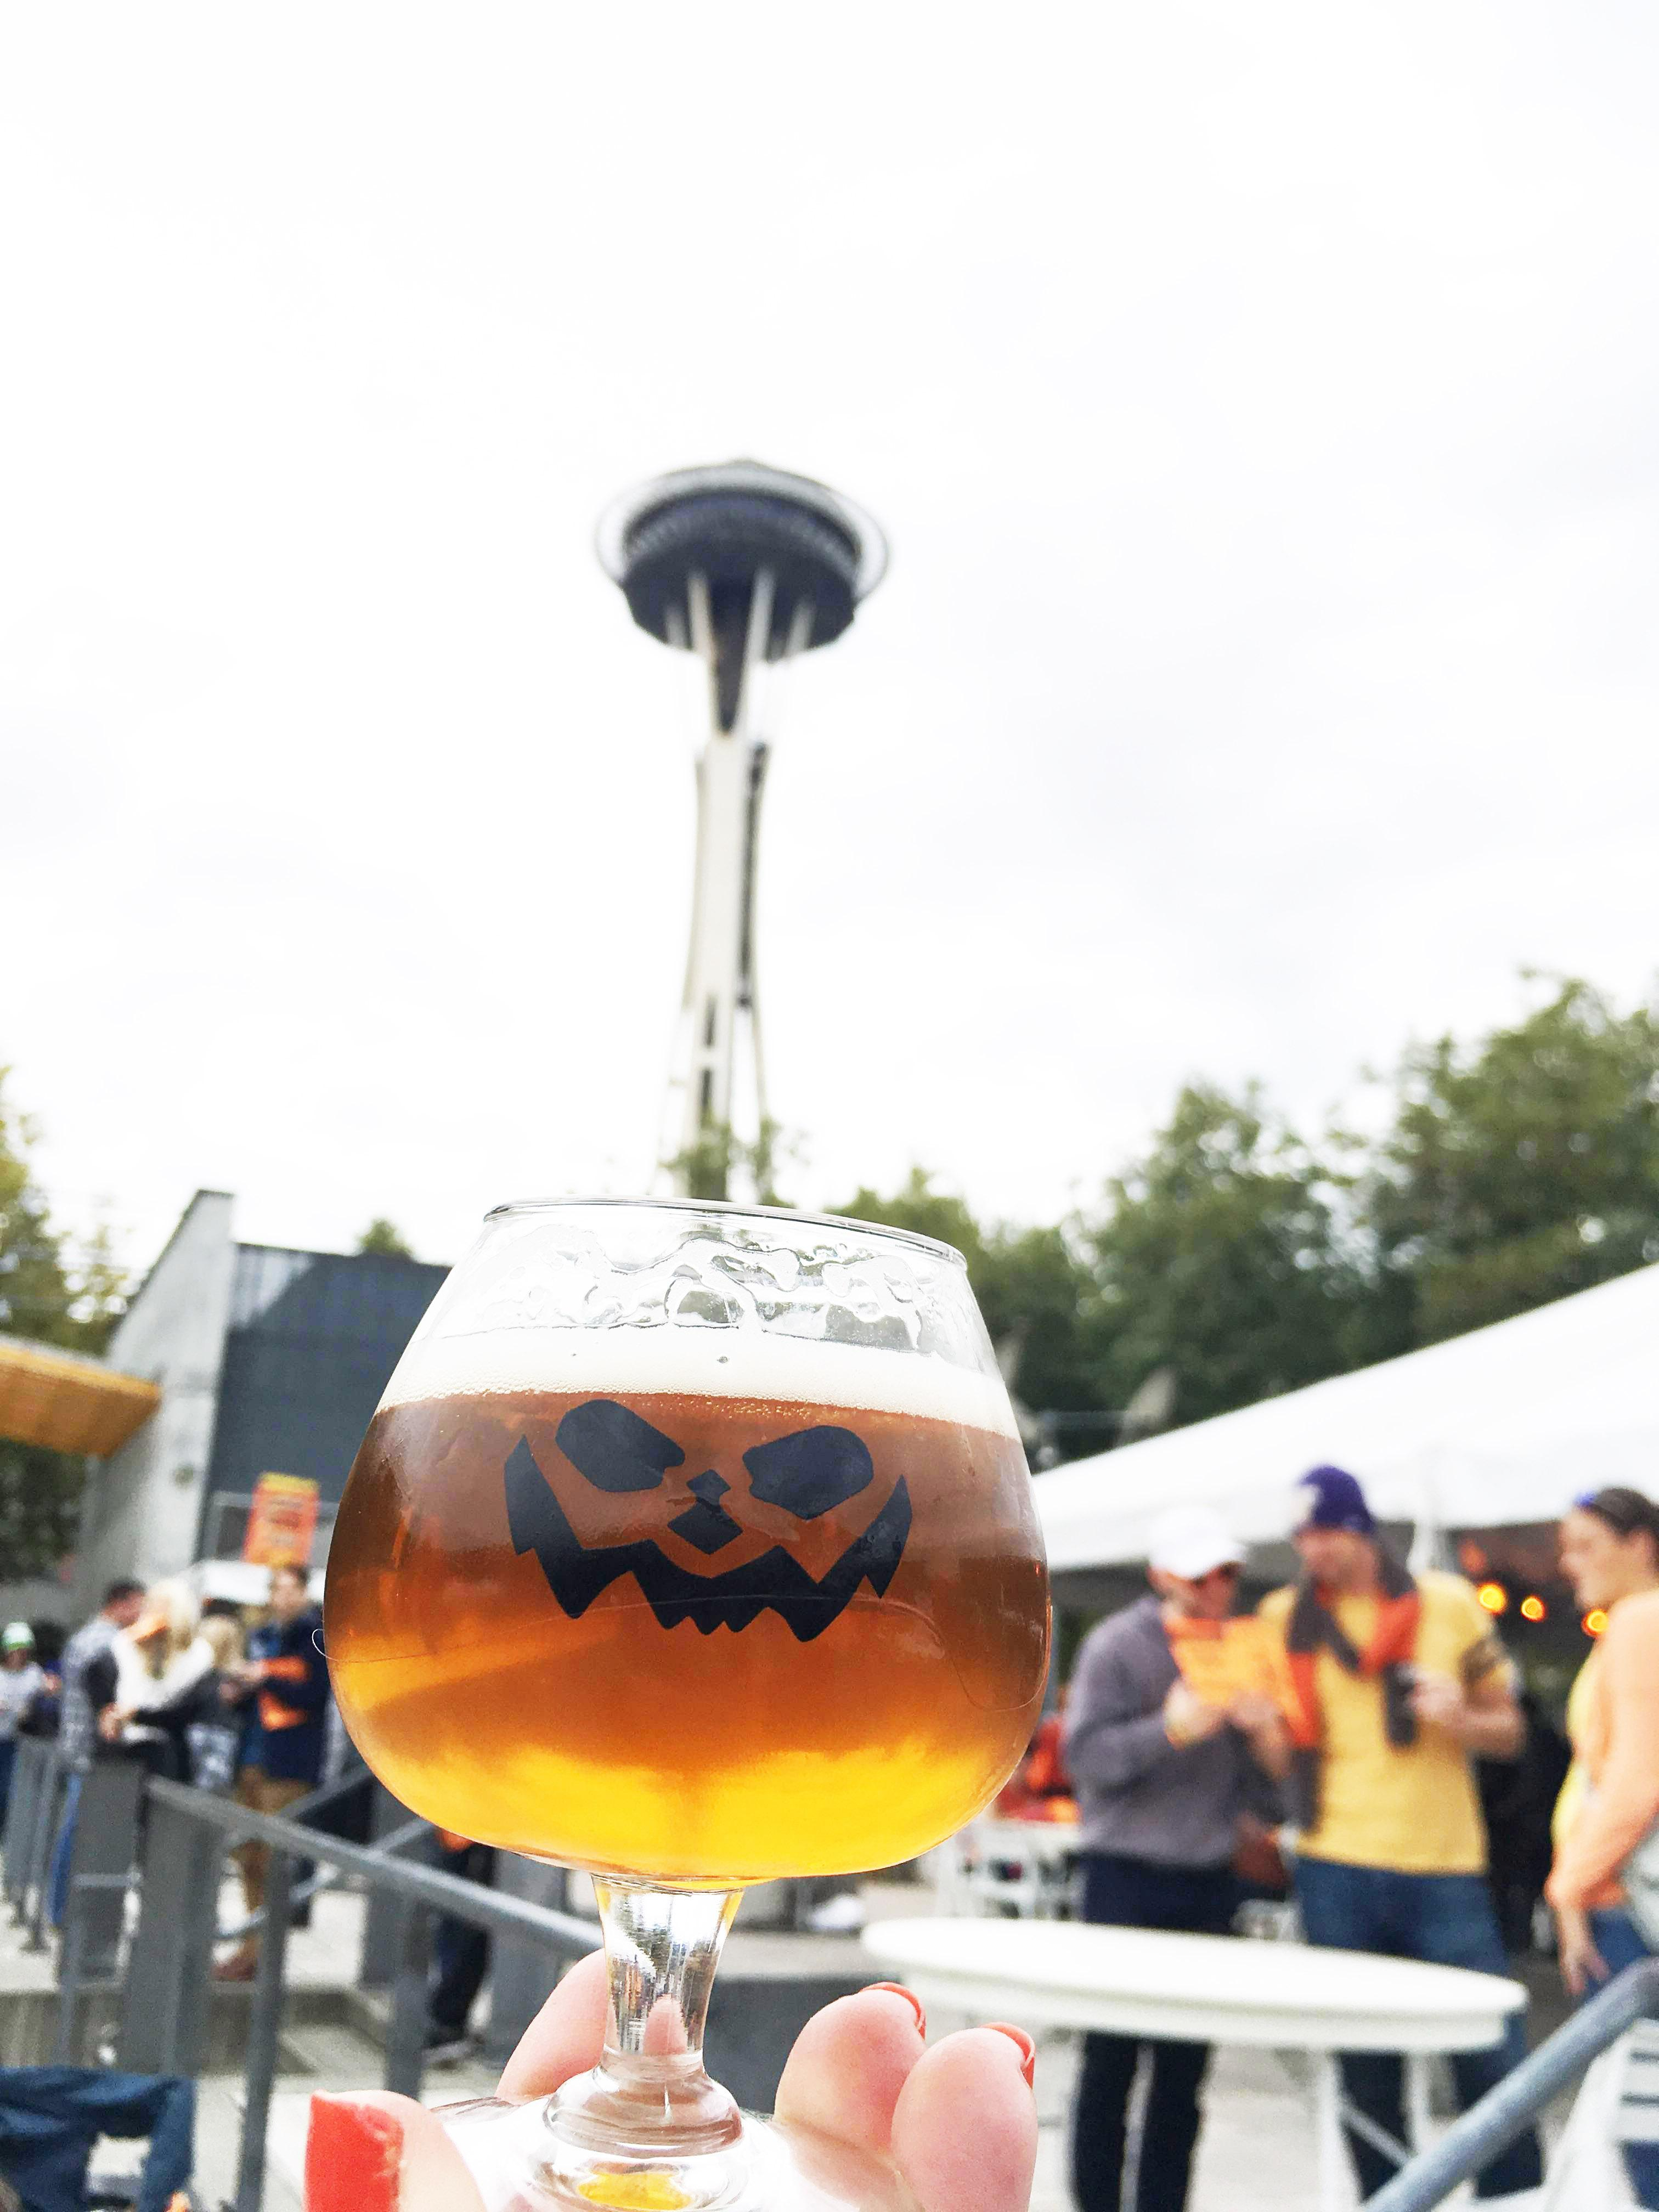 "We rang in fall at Elysian Brewing's 13th annual Great Pumpkin Beer Festival at Seattle Center on September 29 and 30! Festival-goers enjoyed pleasant fall weather while sampling selections of more than 80 pumpkin brews from around the country, and enjoying entertainment provided by Thee Outré Fringe and Chaotic Noise and music curated by KEXP. The day was topped off by a little ""shopping"" for GPBF souvenirs in Elysian's Odditorium! Cheers, Elysian, on the best GPBF yet! (See you there next year—mark your calendar for October 5 and 6, 2018!) Photo: Michelle Sistek / Seattle Refined)"